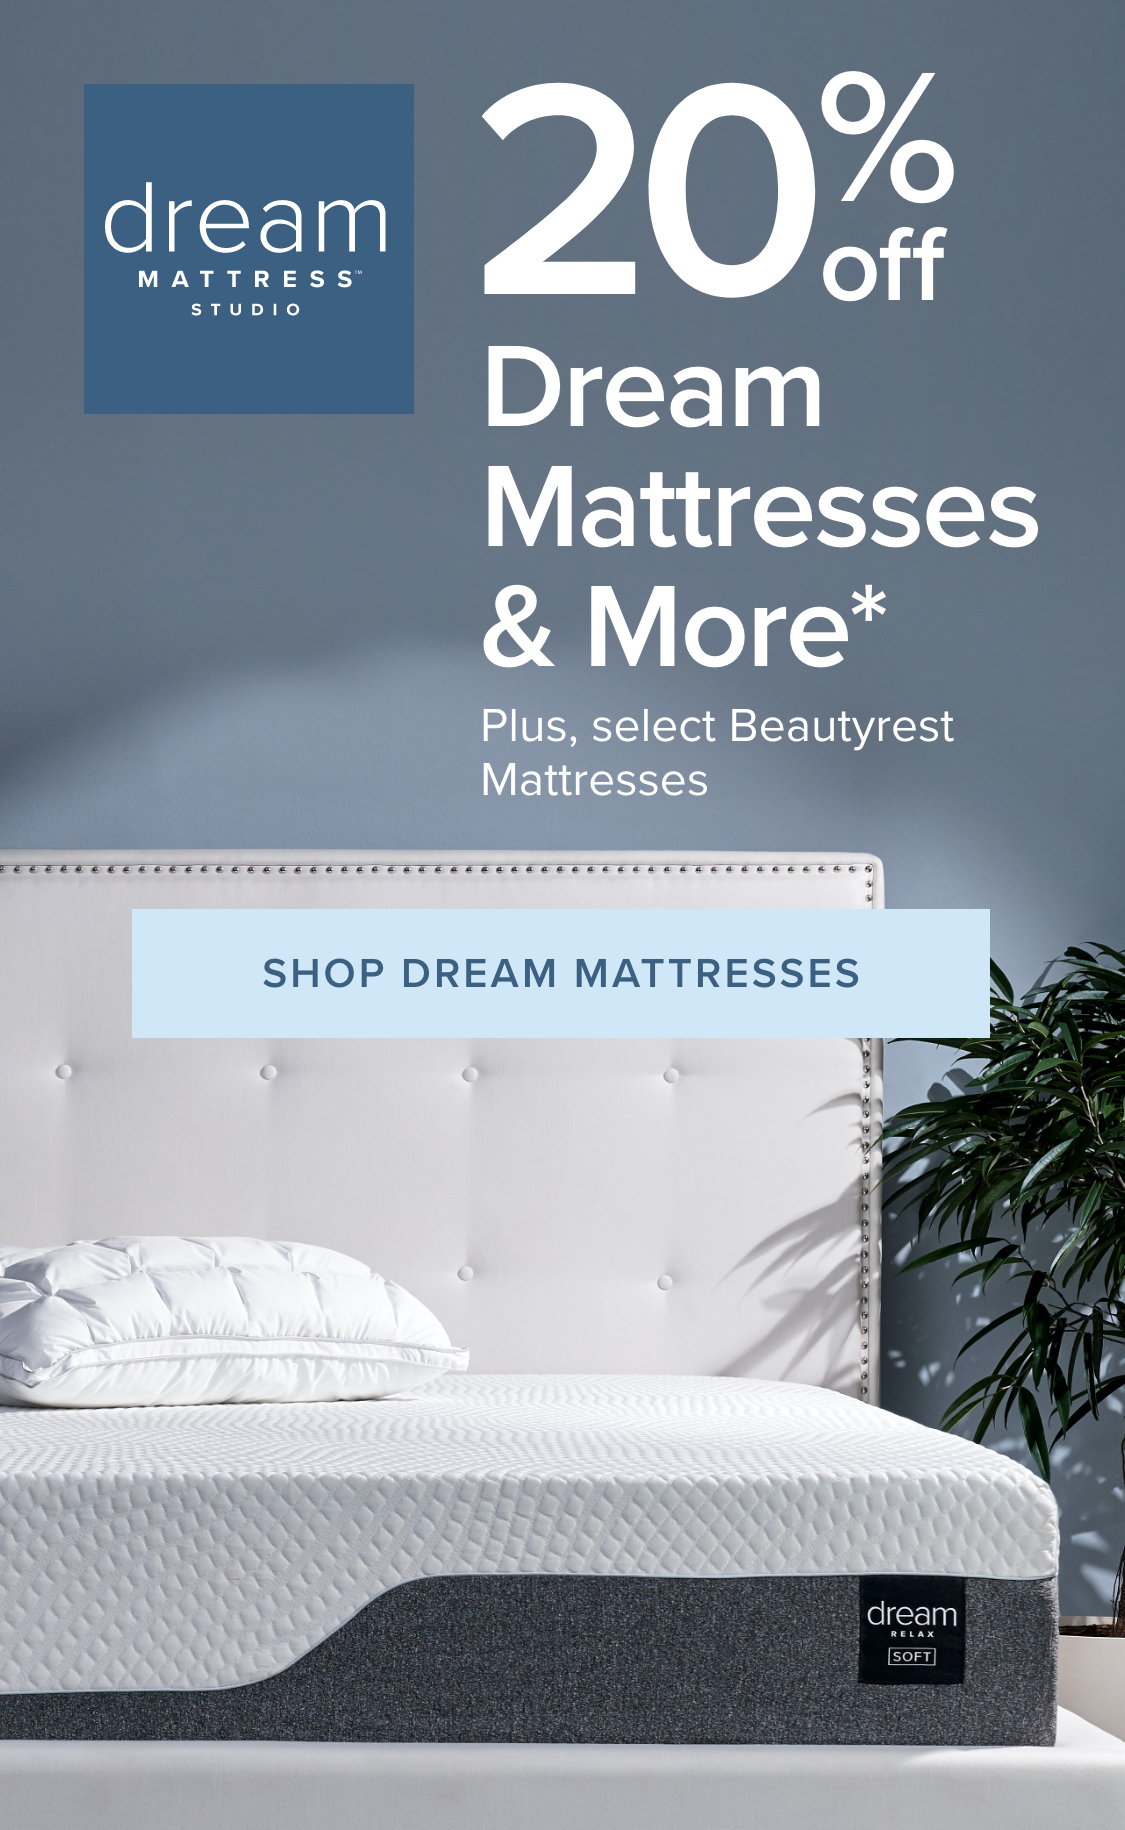 Dream Mattress Studio + Our Personalized Approach to Mattress Shopping 20% off